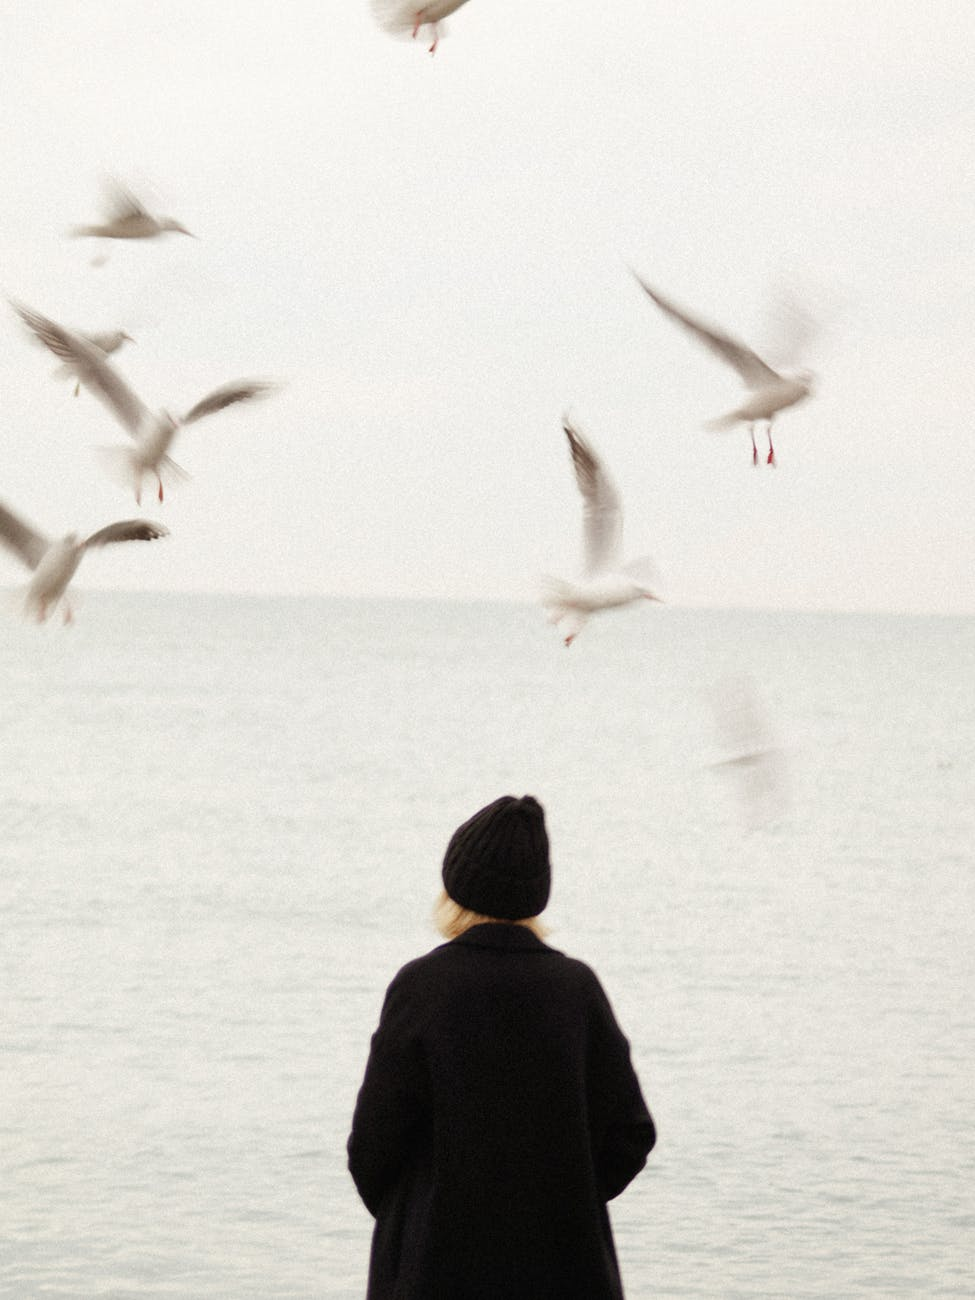 blond woman in black standing at seashore and seagulls flying around